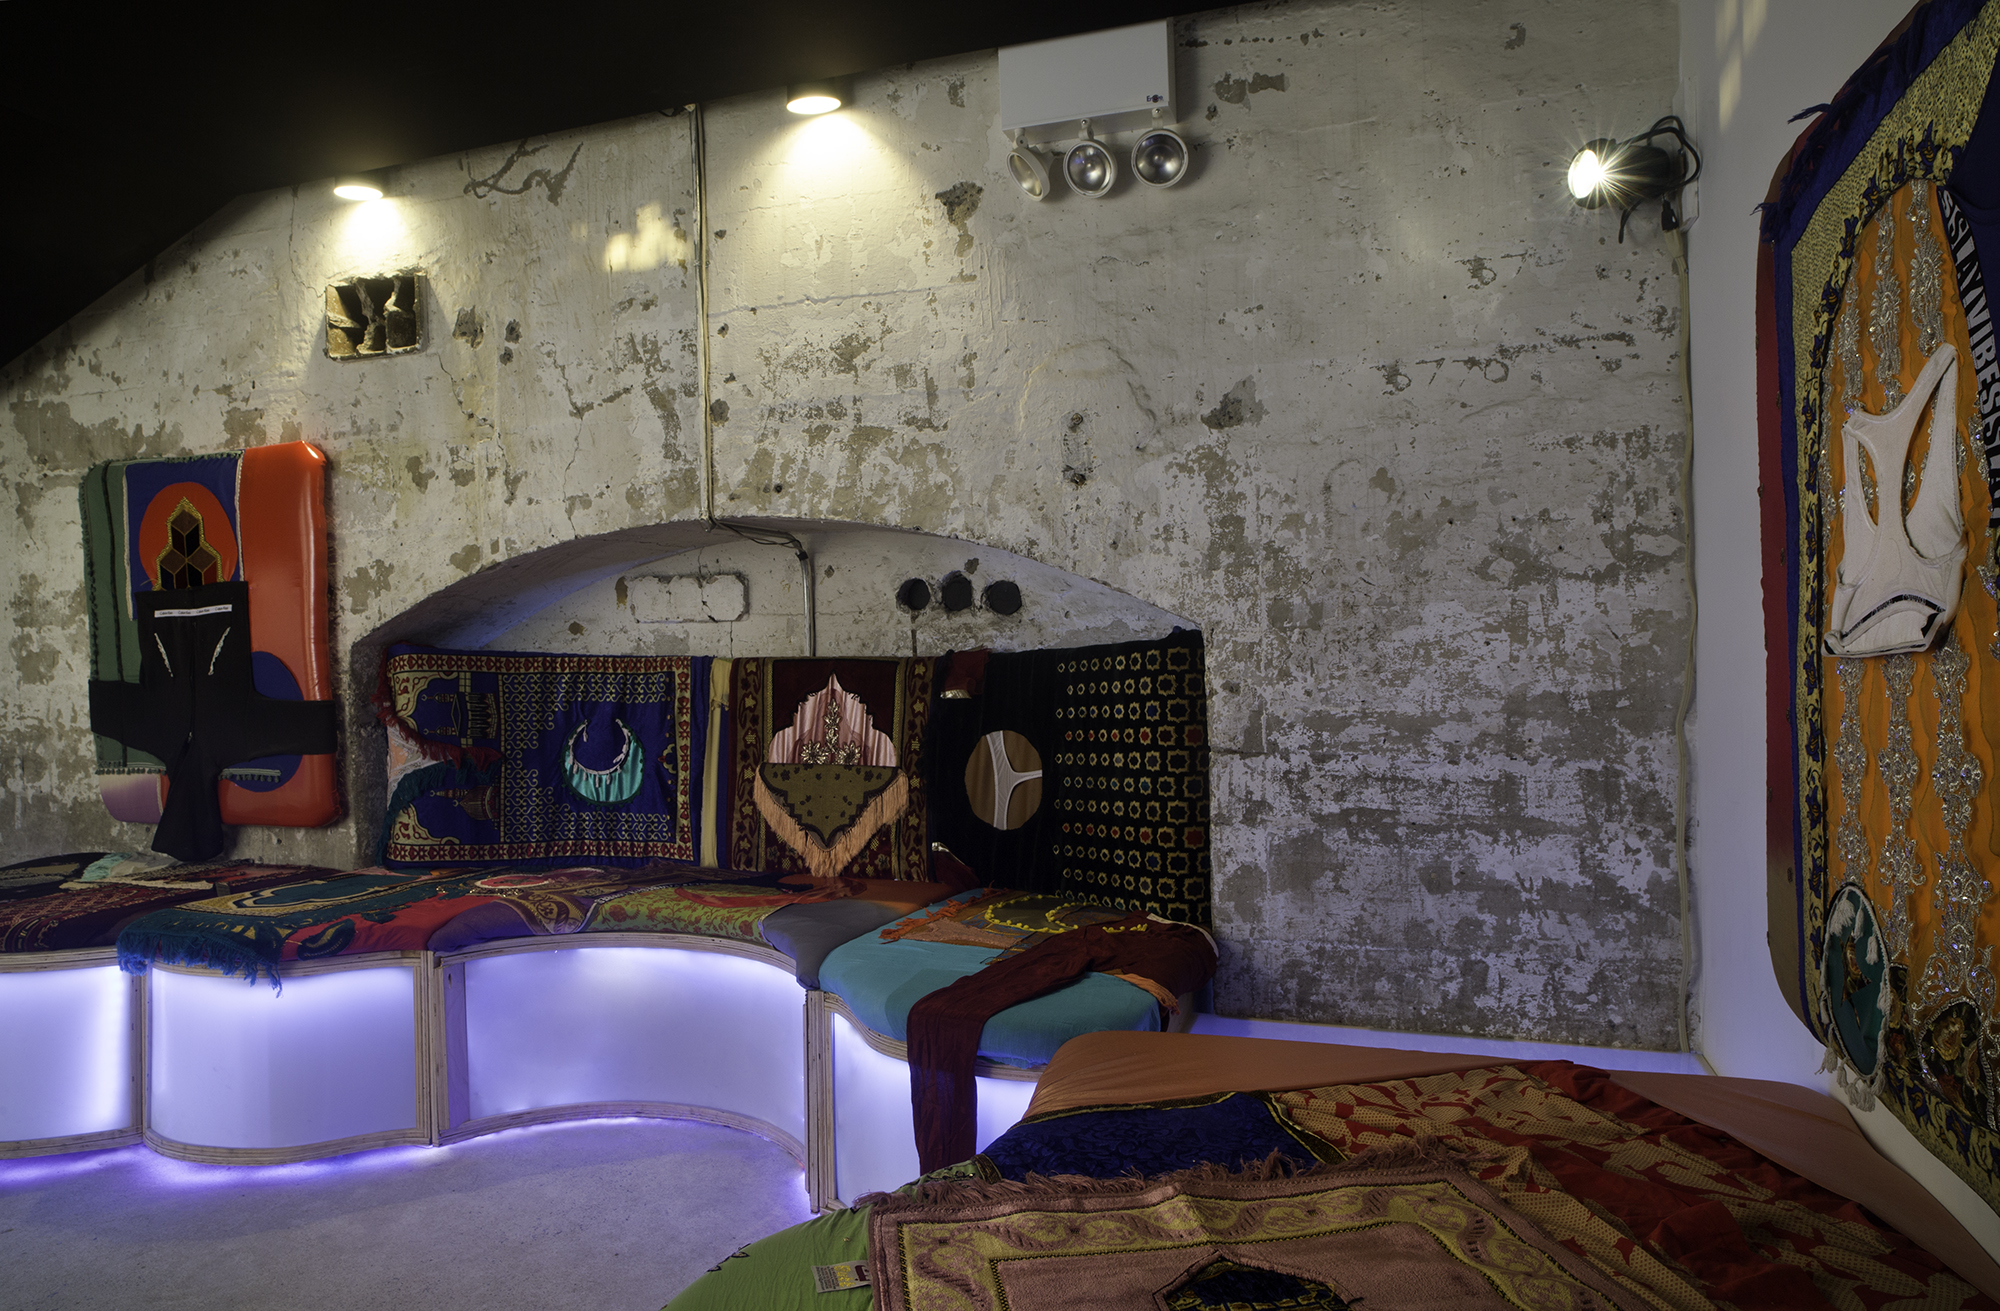 Custom lounge unit with eight unique seating panels made from pleather, artist's underwear, and mass produced prayer rugs lined with LED lighting